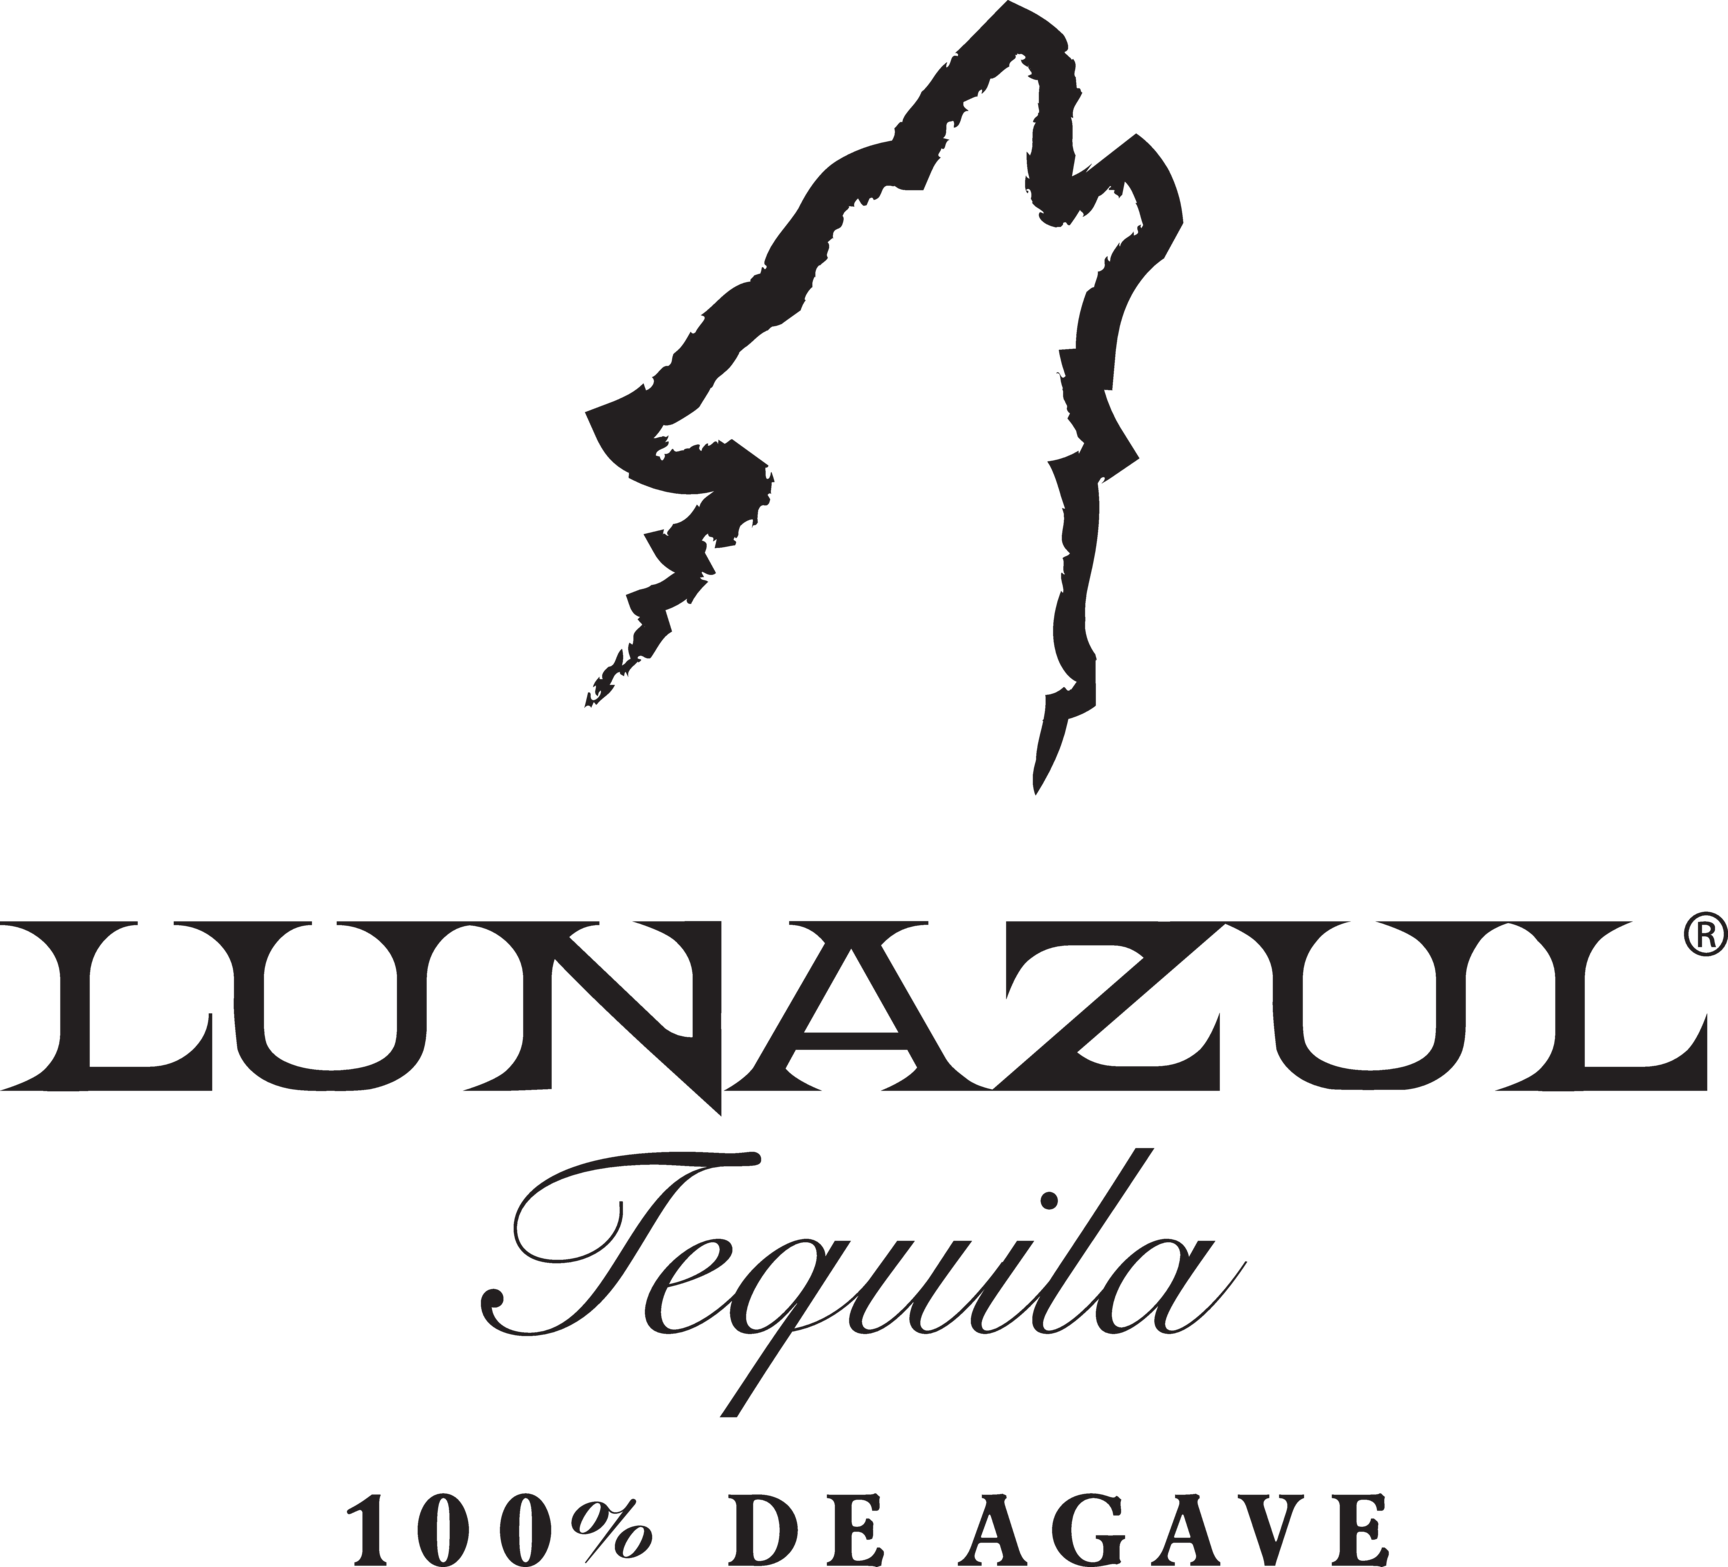 LZ_DistressedWolf_Logo_Lockup_Agave_Black - James Palumbo.png